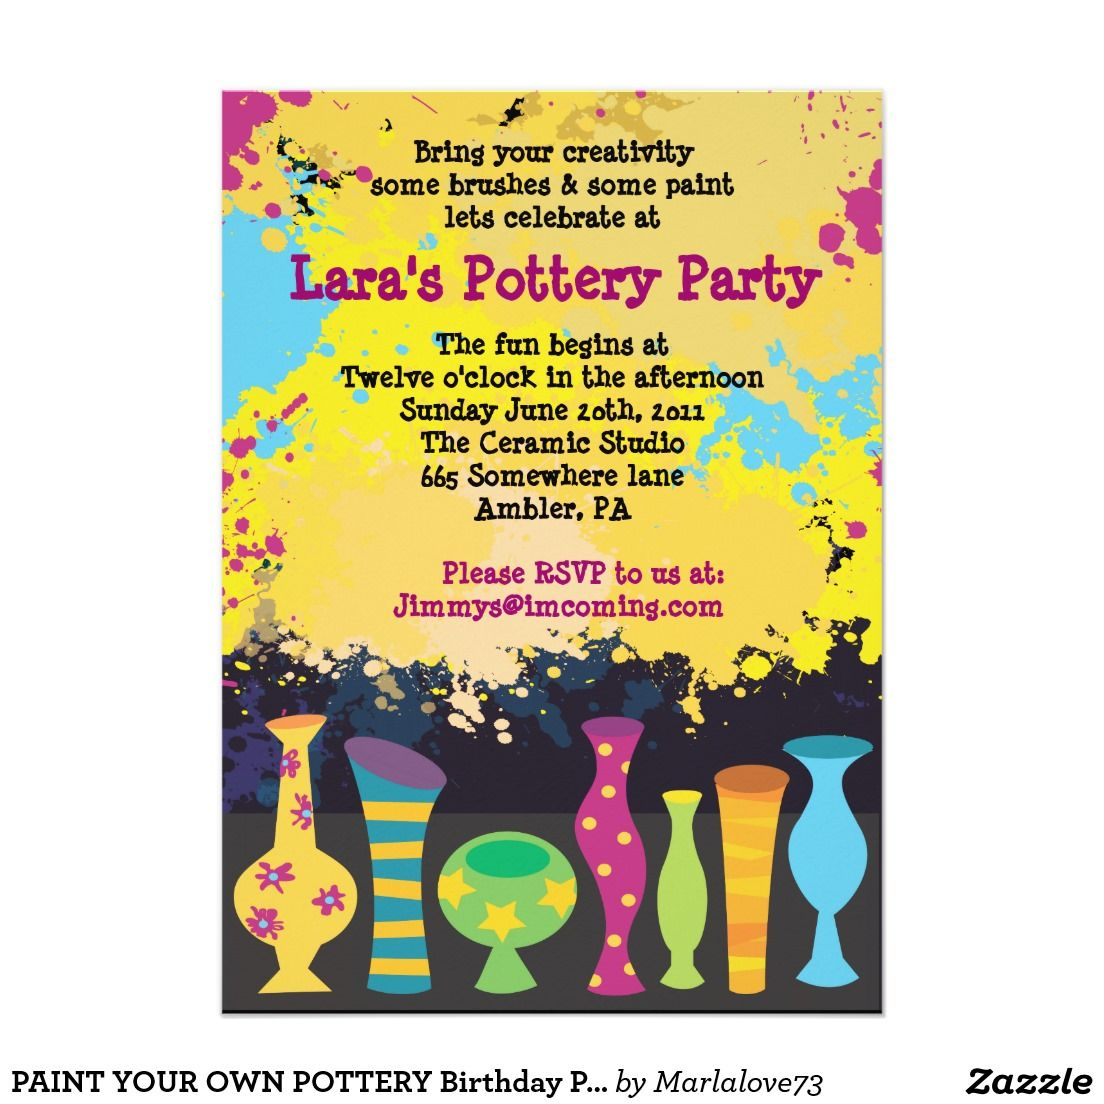 YOUR OWN POTTERY Birthday Party Invitation